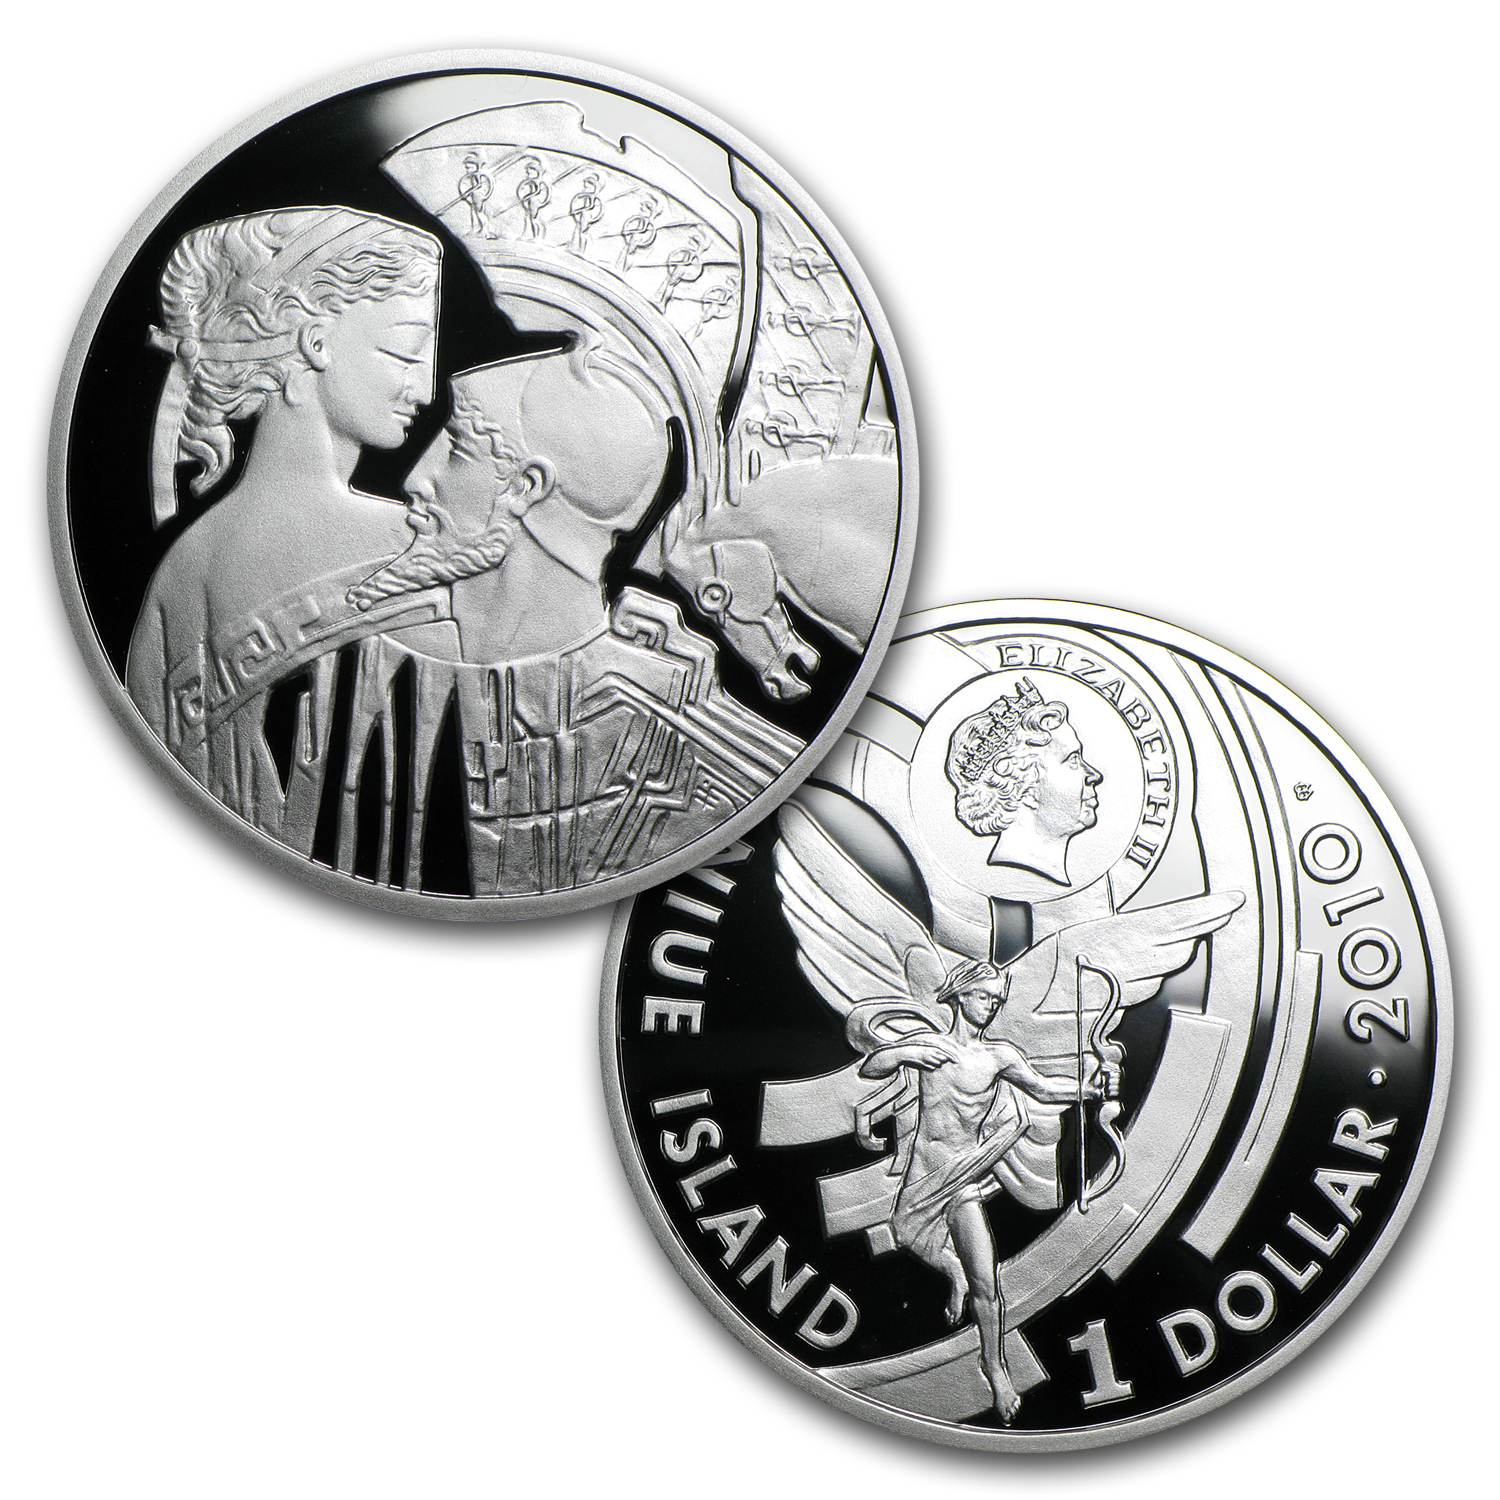 2010 Niue 3-Coin Silver $1 Famous Love Stories Proof Set